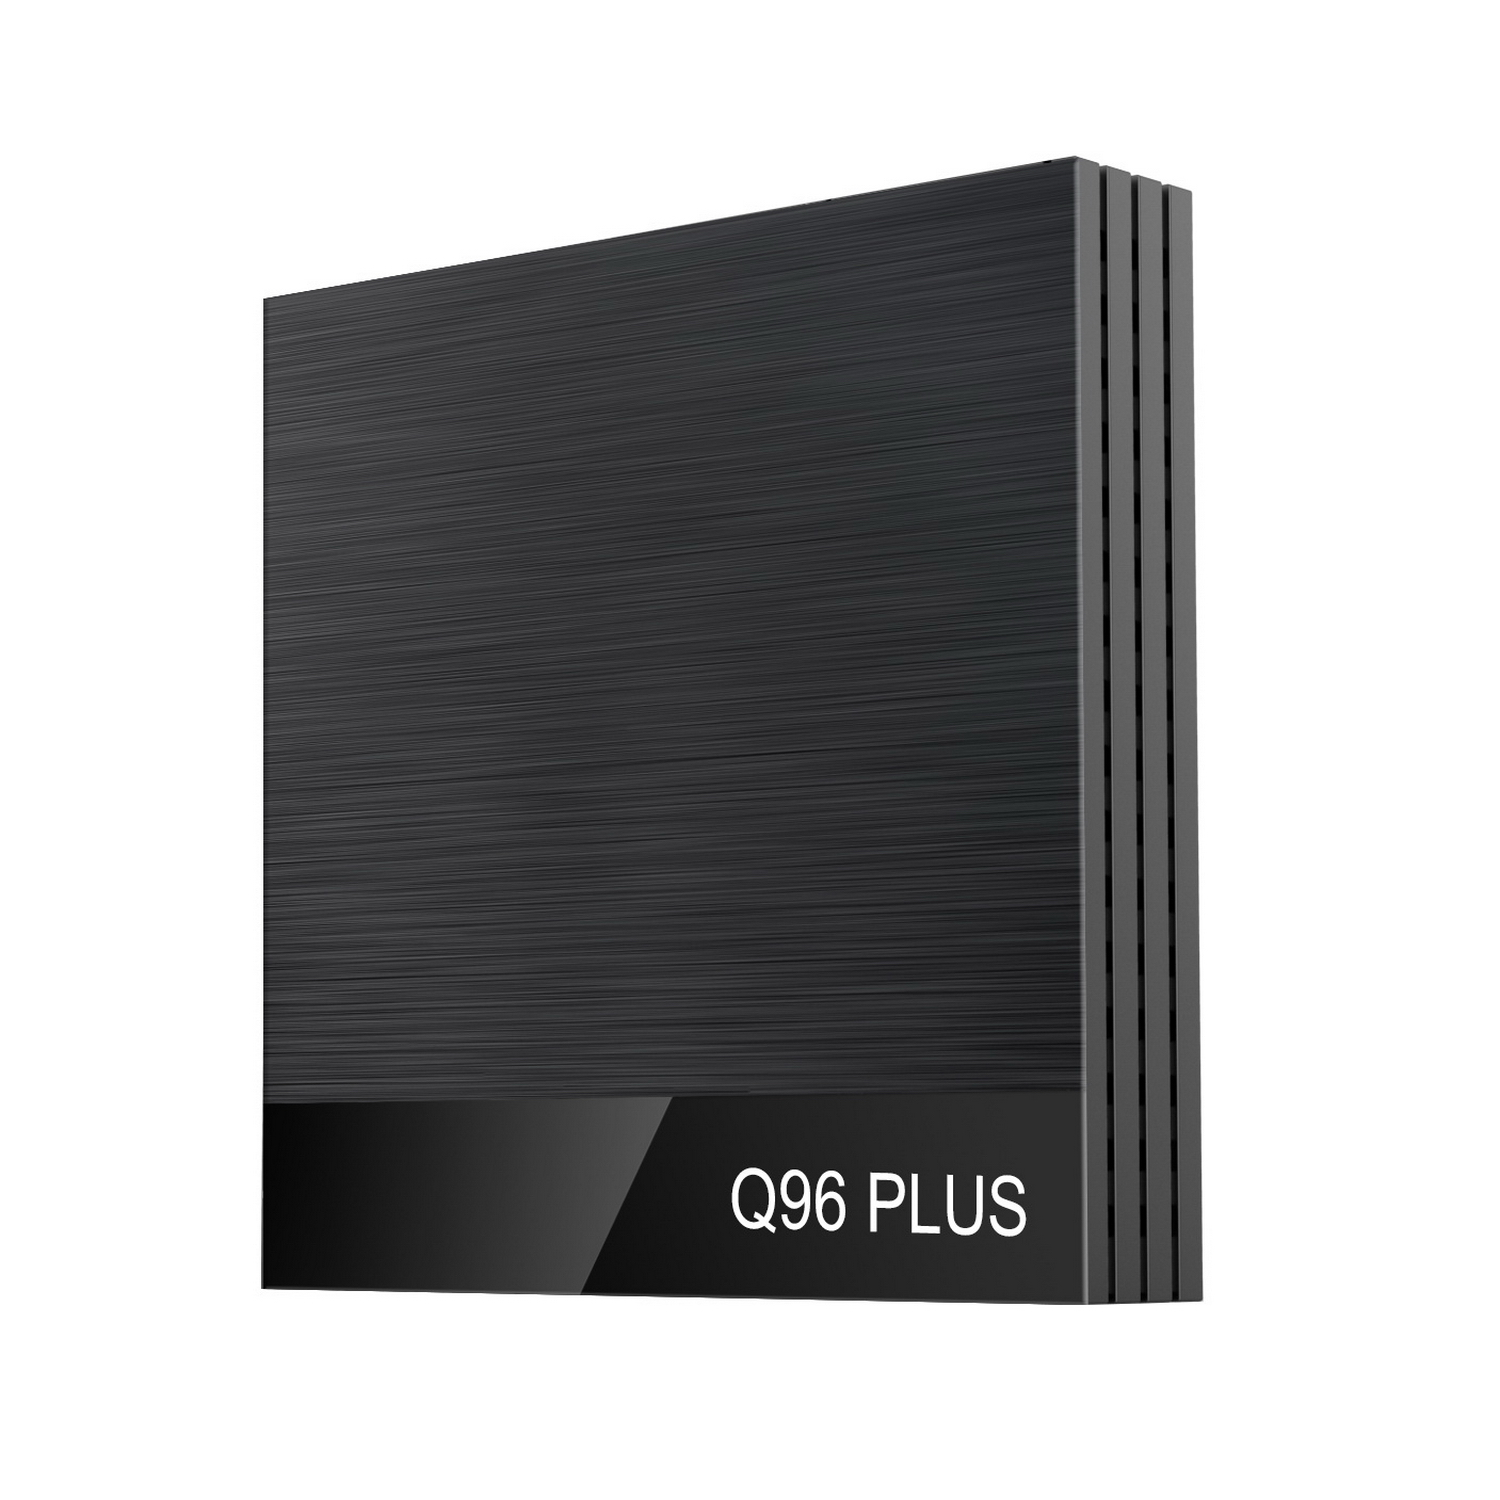 Q96 Plus Rk3228 Lösung Hd Mini Tv Box Ram 4G Rom 32G BT4.0 Digitale Led-anzeige Zeit Für android 8.1 Smart Tv Box